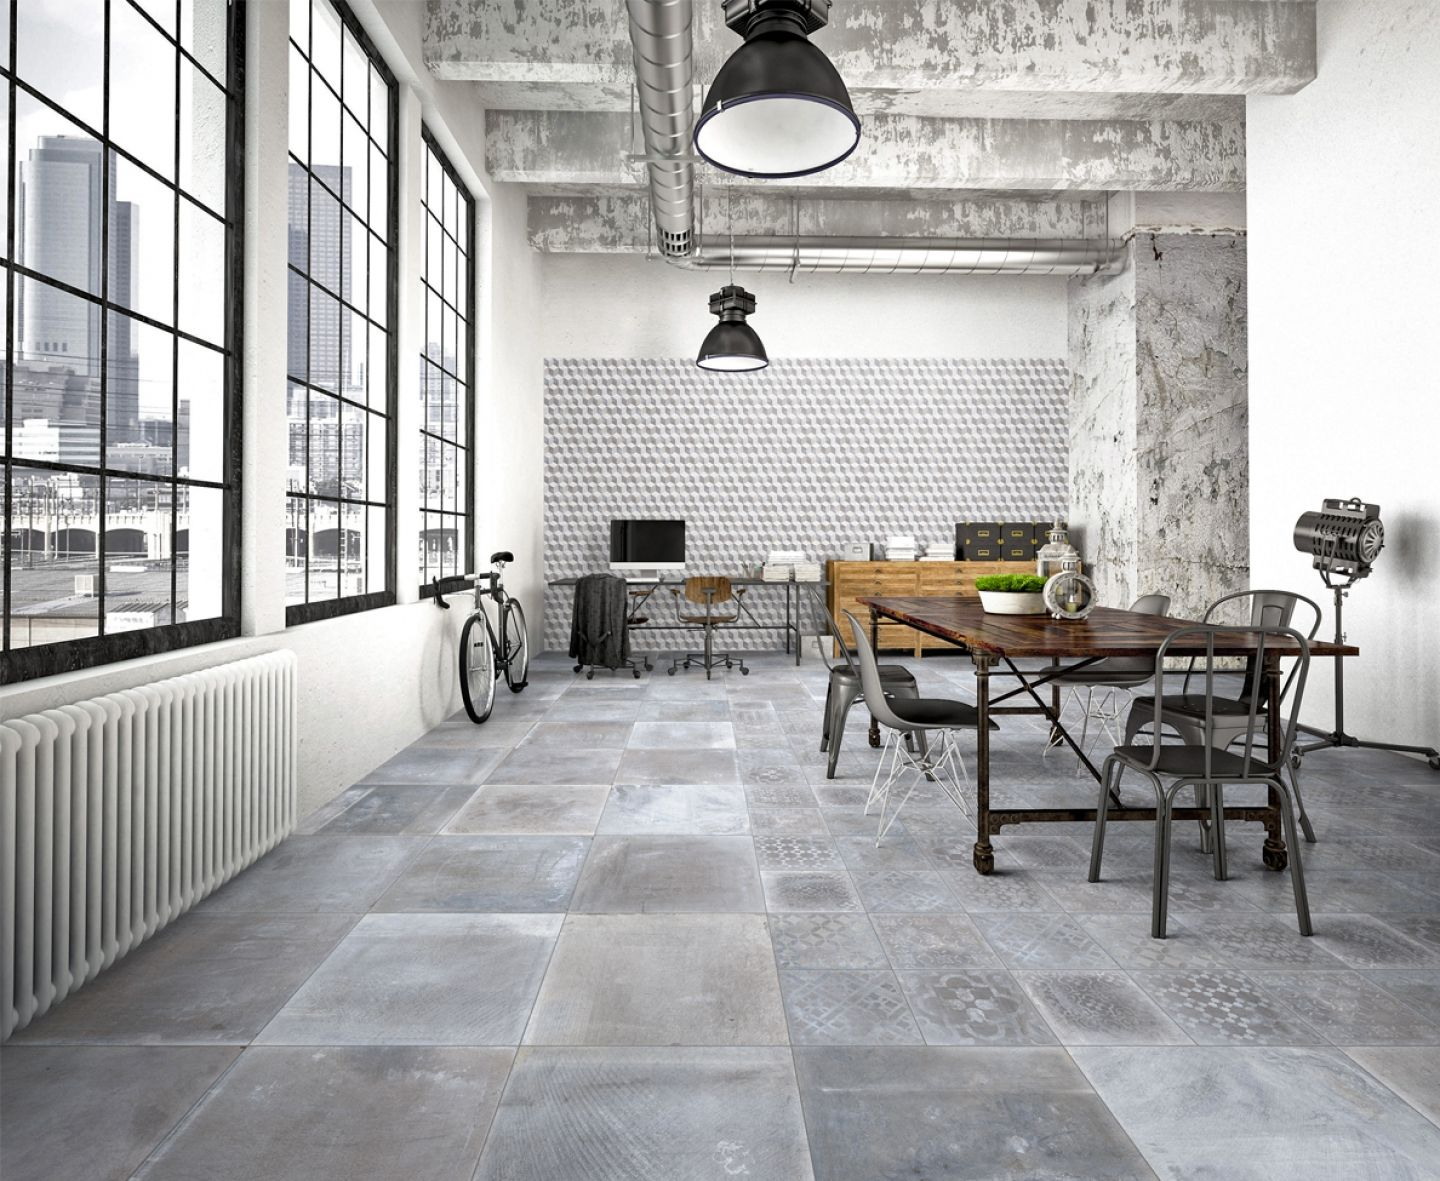 Sintesi Ceramica Italiana.Sintesi Ceramica Italiana Cement Look Tiles Piastrelle